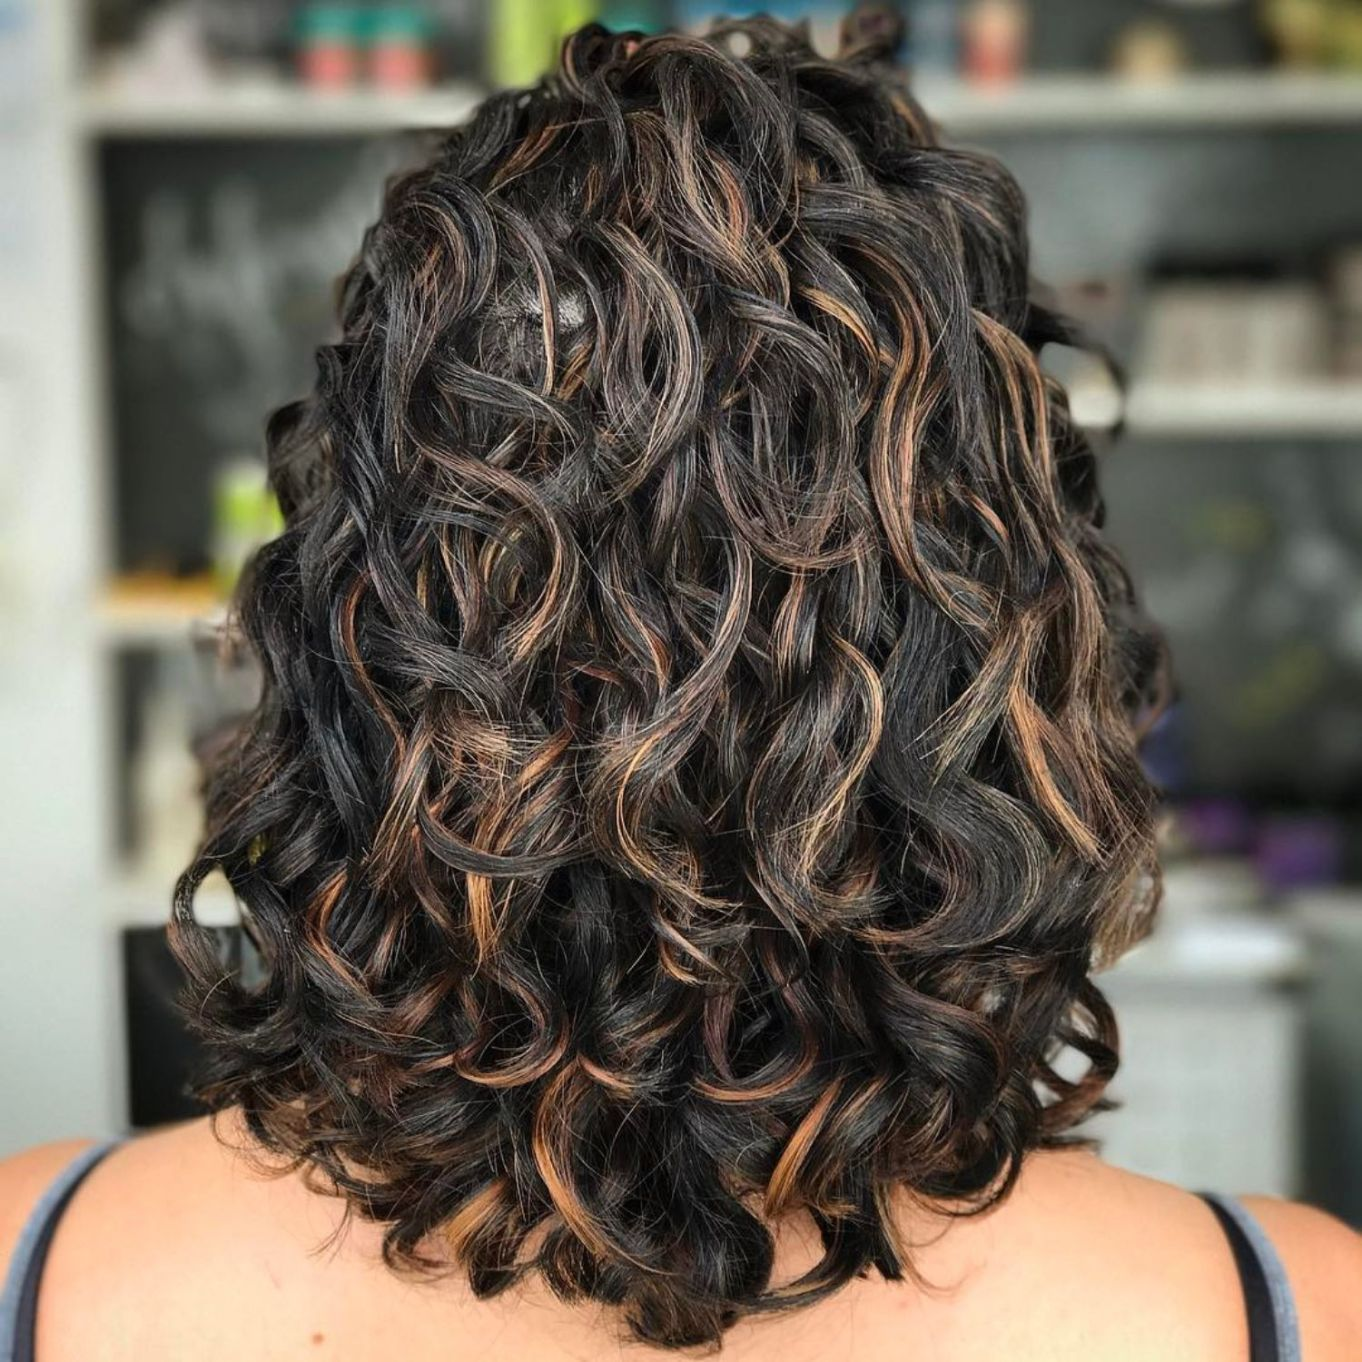 Black curly hairstyle with copper highlights in 2020